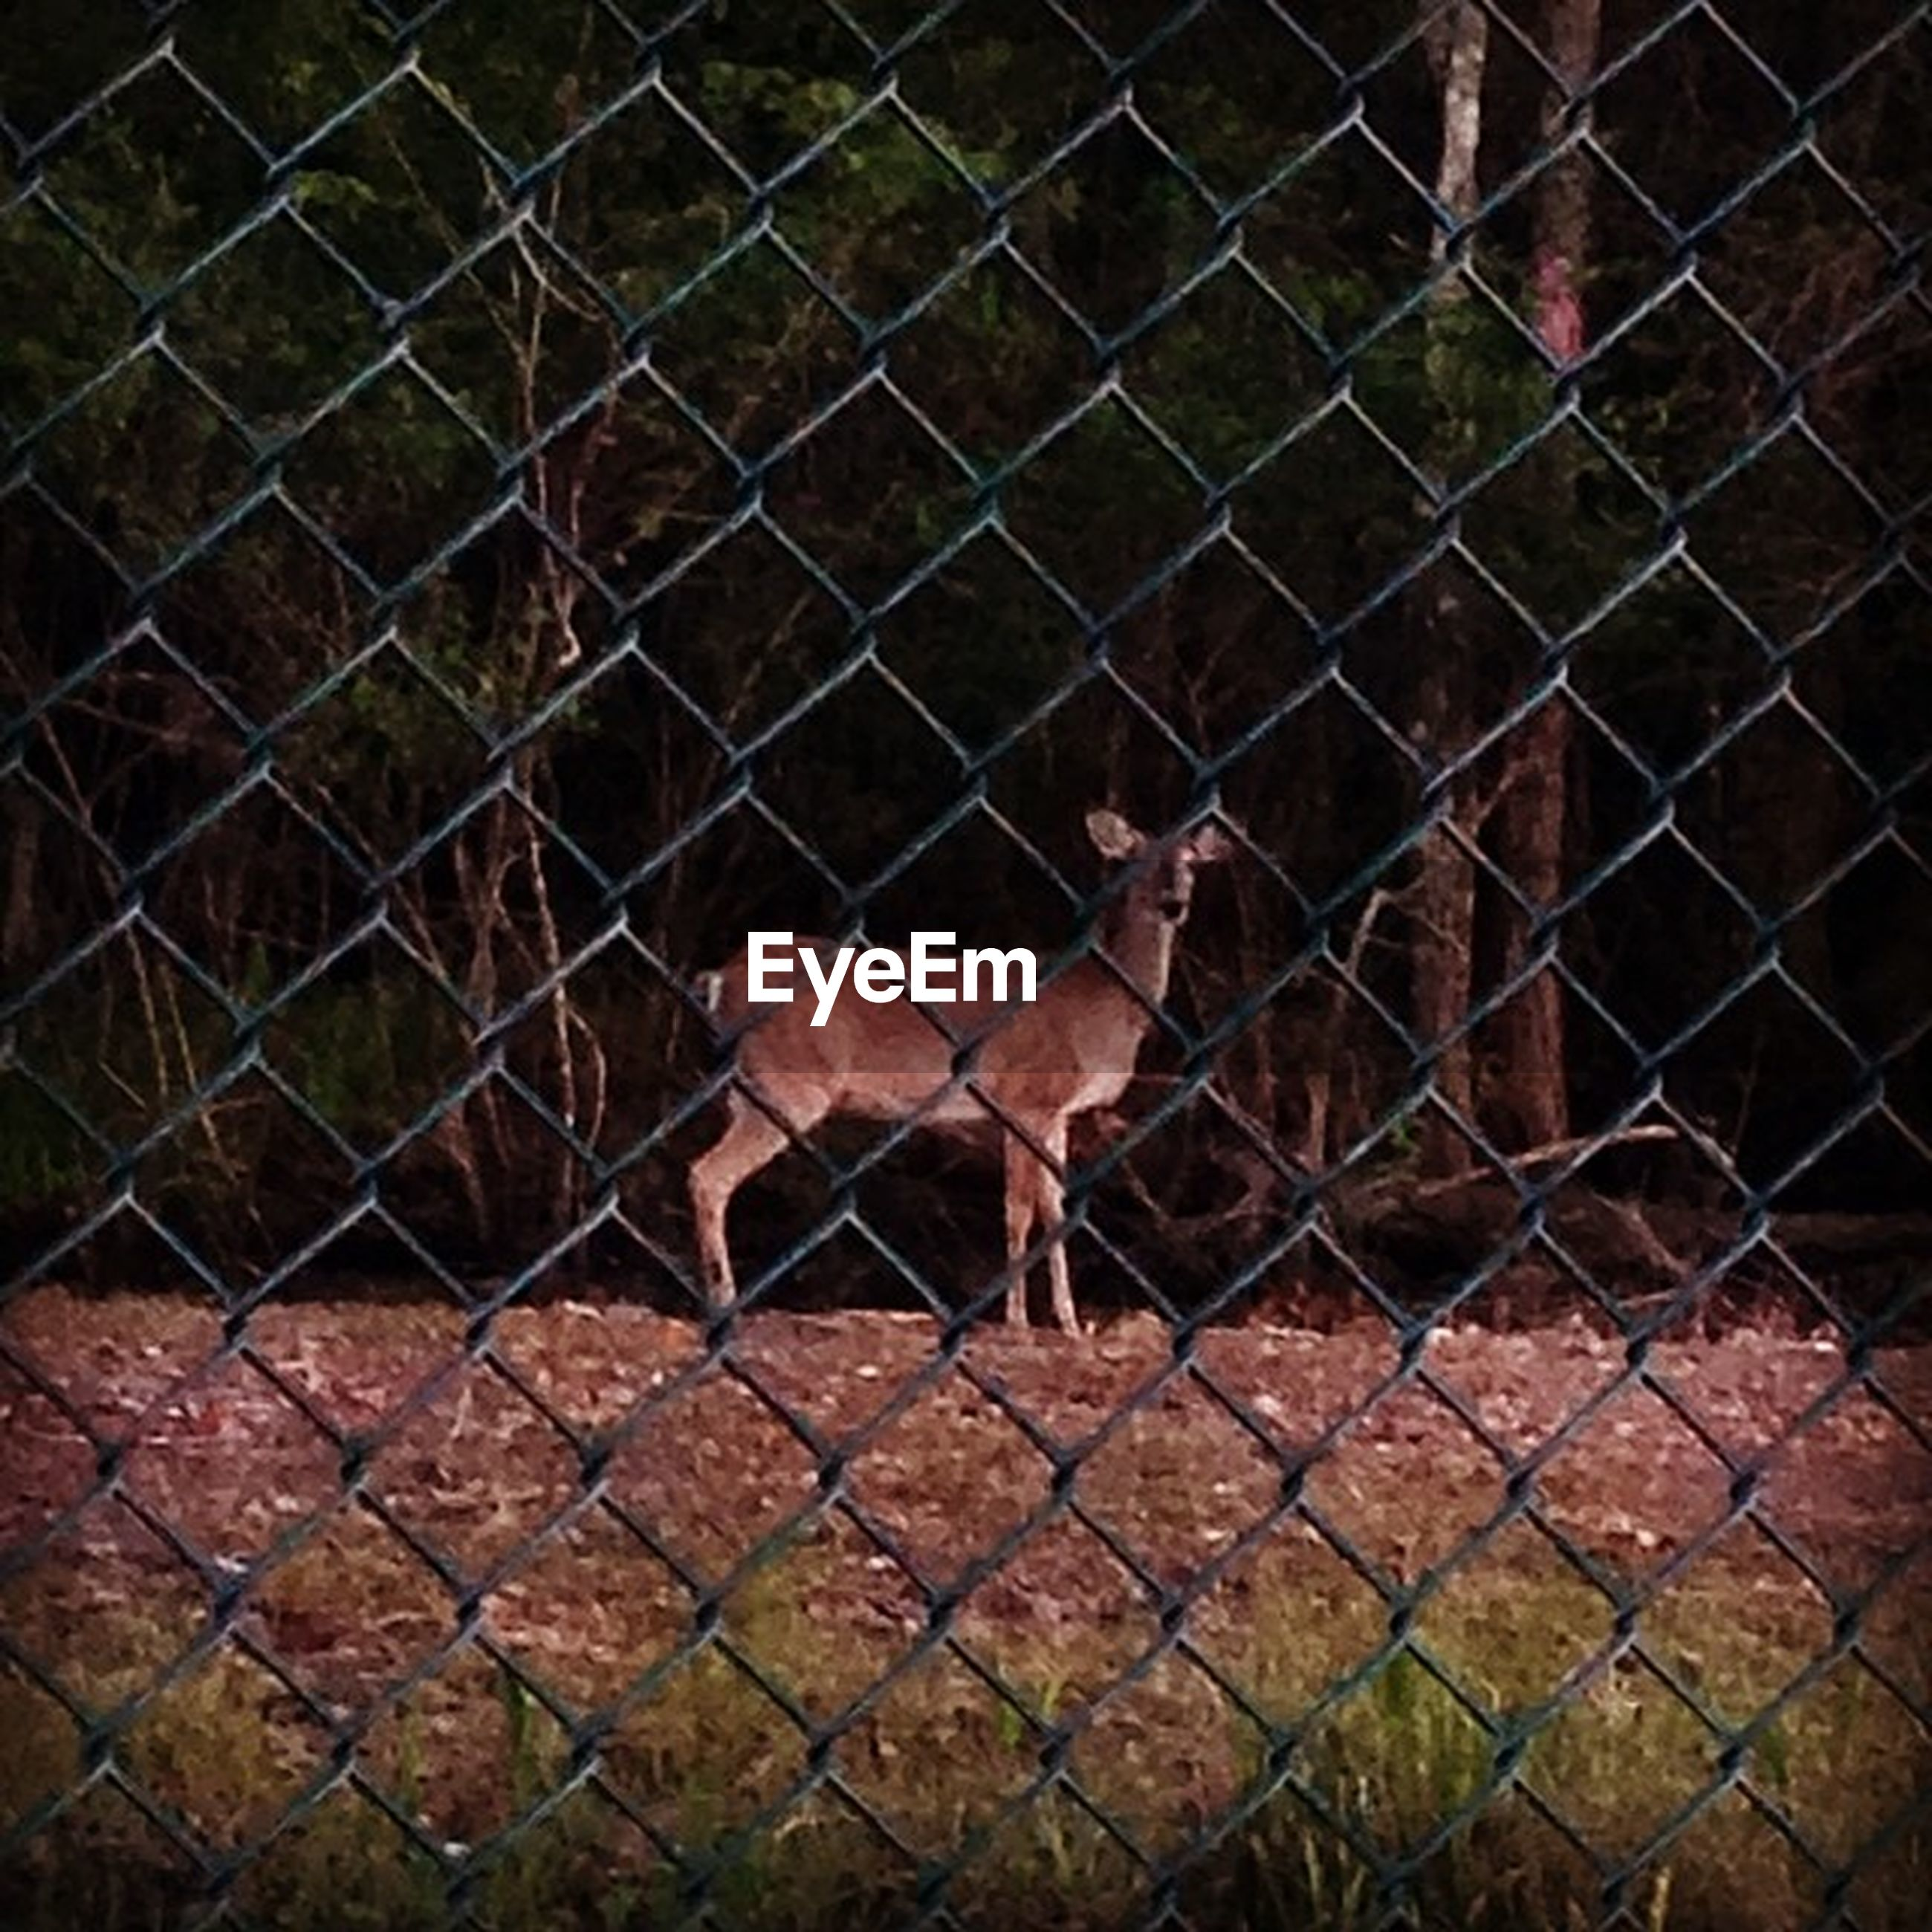 animal themes, fence, chainlink fence, one animal, mammal, protection, domestic animals, safety, metal, livestock, cage, wildlife, animals in captivity, animals in the wild, security, outdoors, no people, standing, day, metal grate